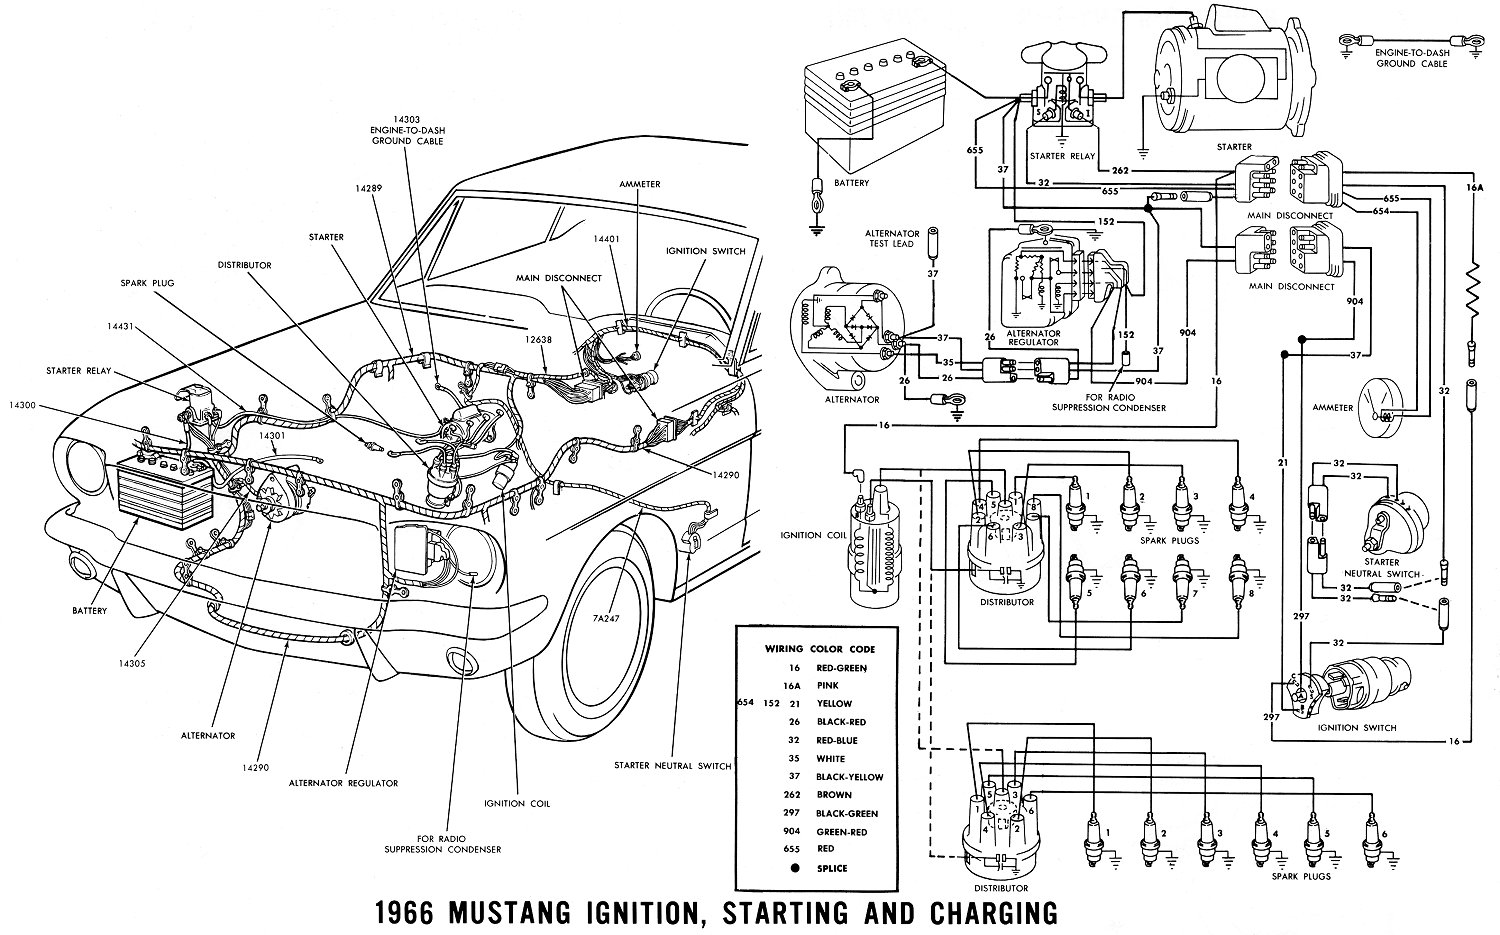 isuzu engine cooling diagram with 1966 Mustang Ignition Wiring Diagram on 1022274 Glow Plug Controller Location likewise 53umx Toyota Sienna Xle Need Diagram Hoses Pipes Around in addition Pt Cruiser Oil Sending Unit Location additionally RepairGuideContent furthermore Water Pump Replacement Cost.